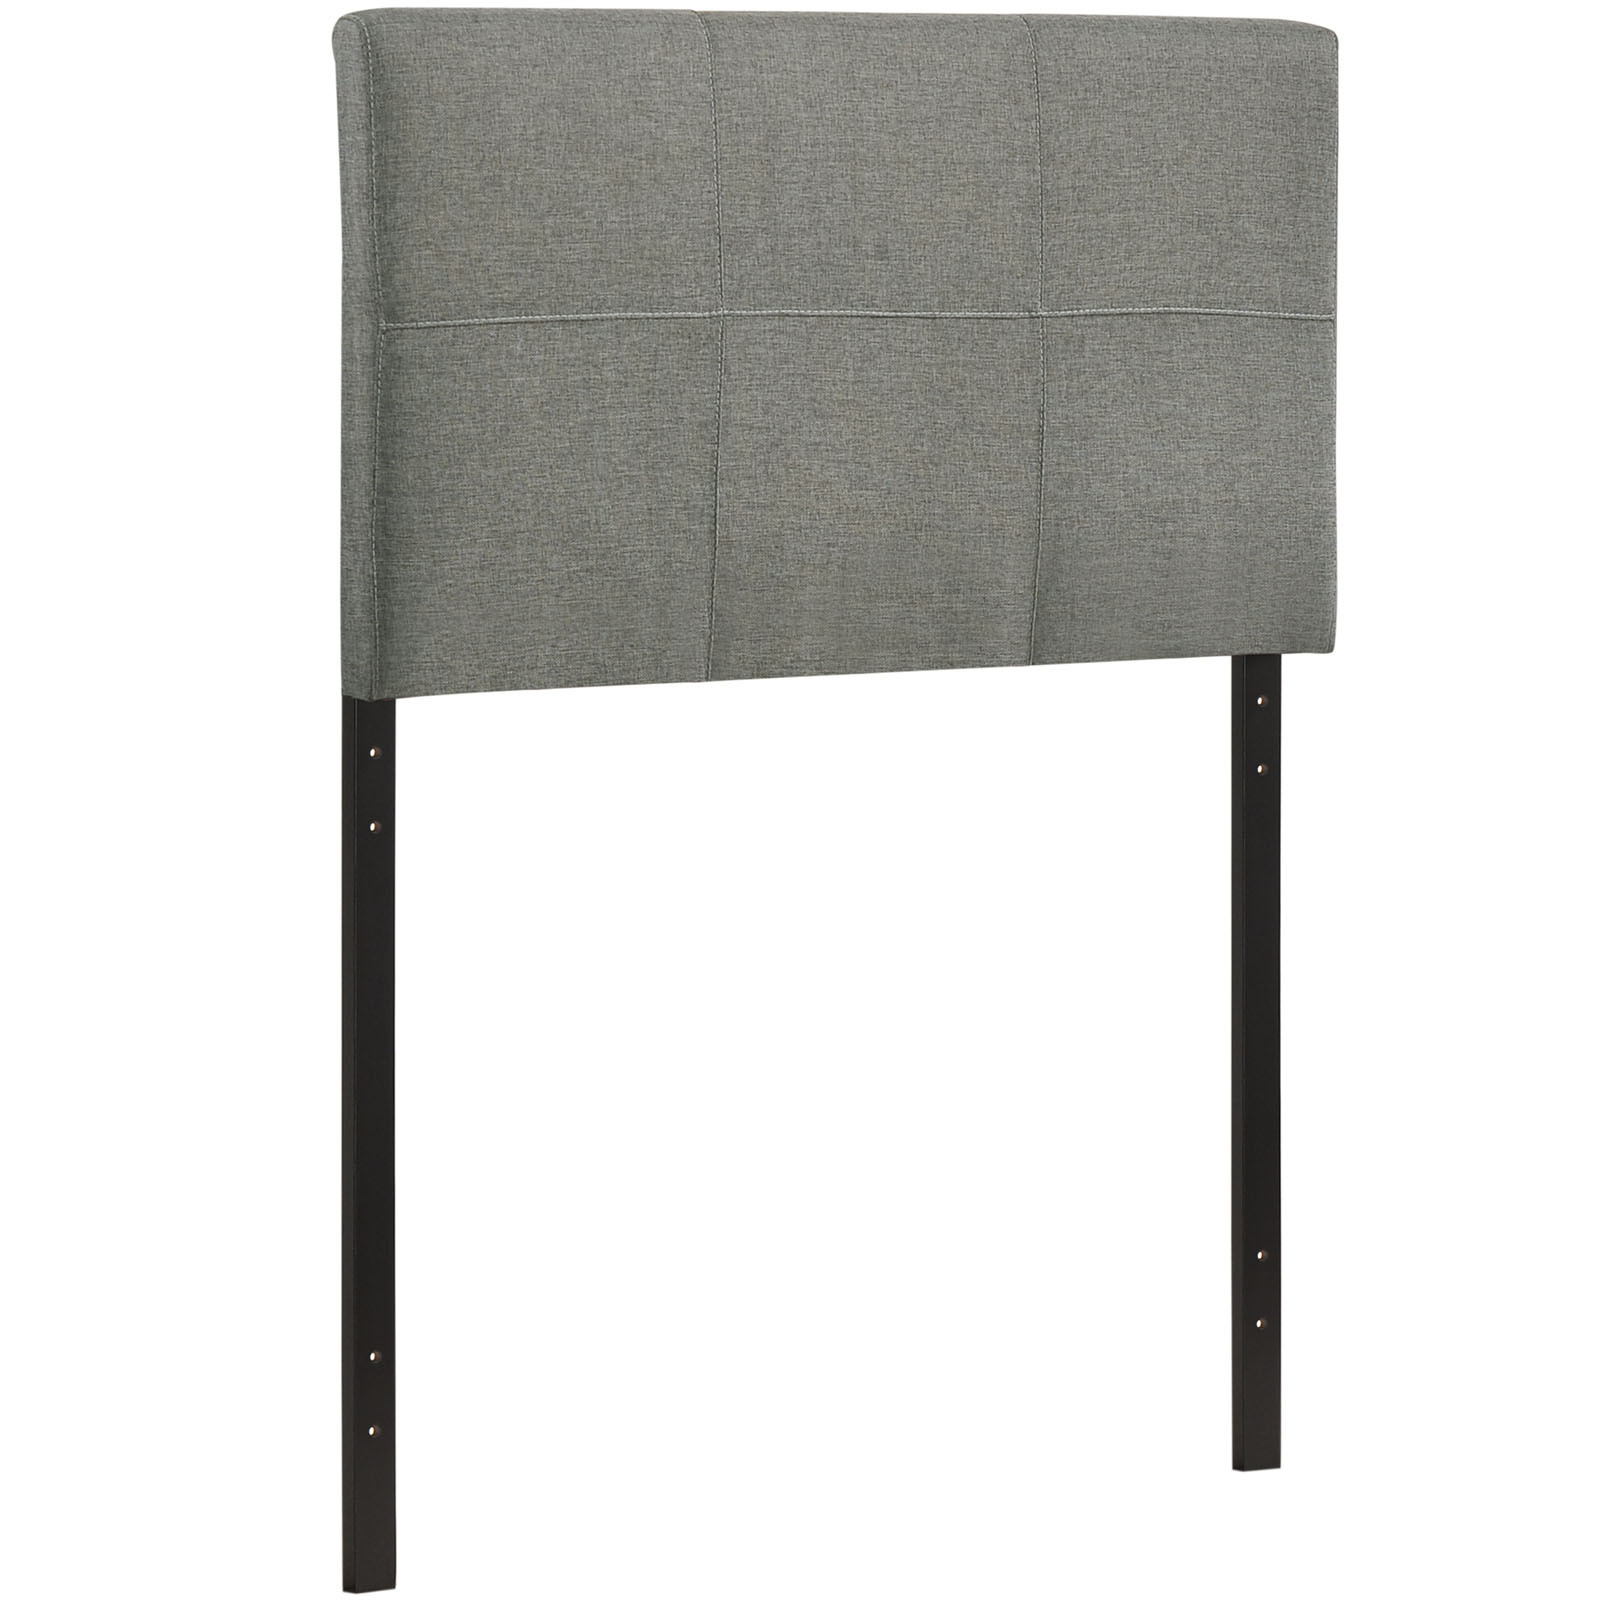 Booth Oliver Graytwin Upholstered Fabric Headboard